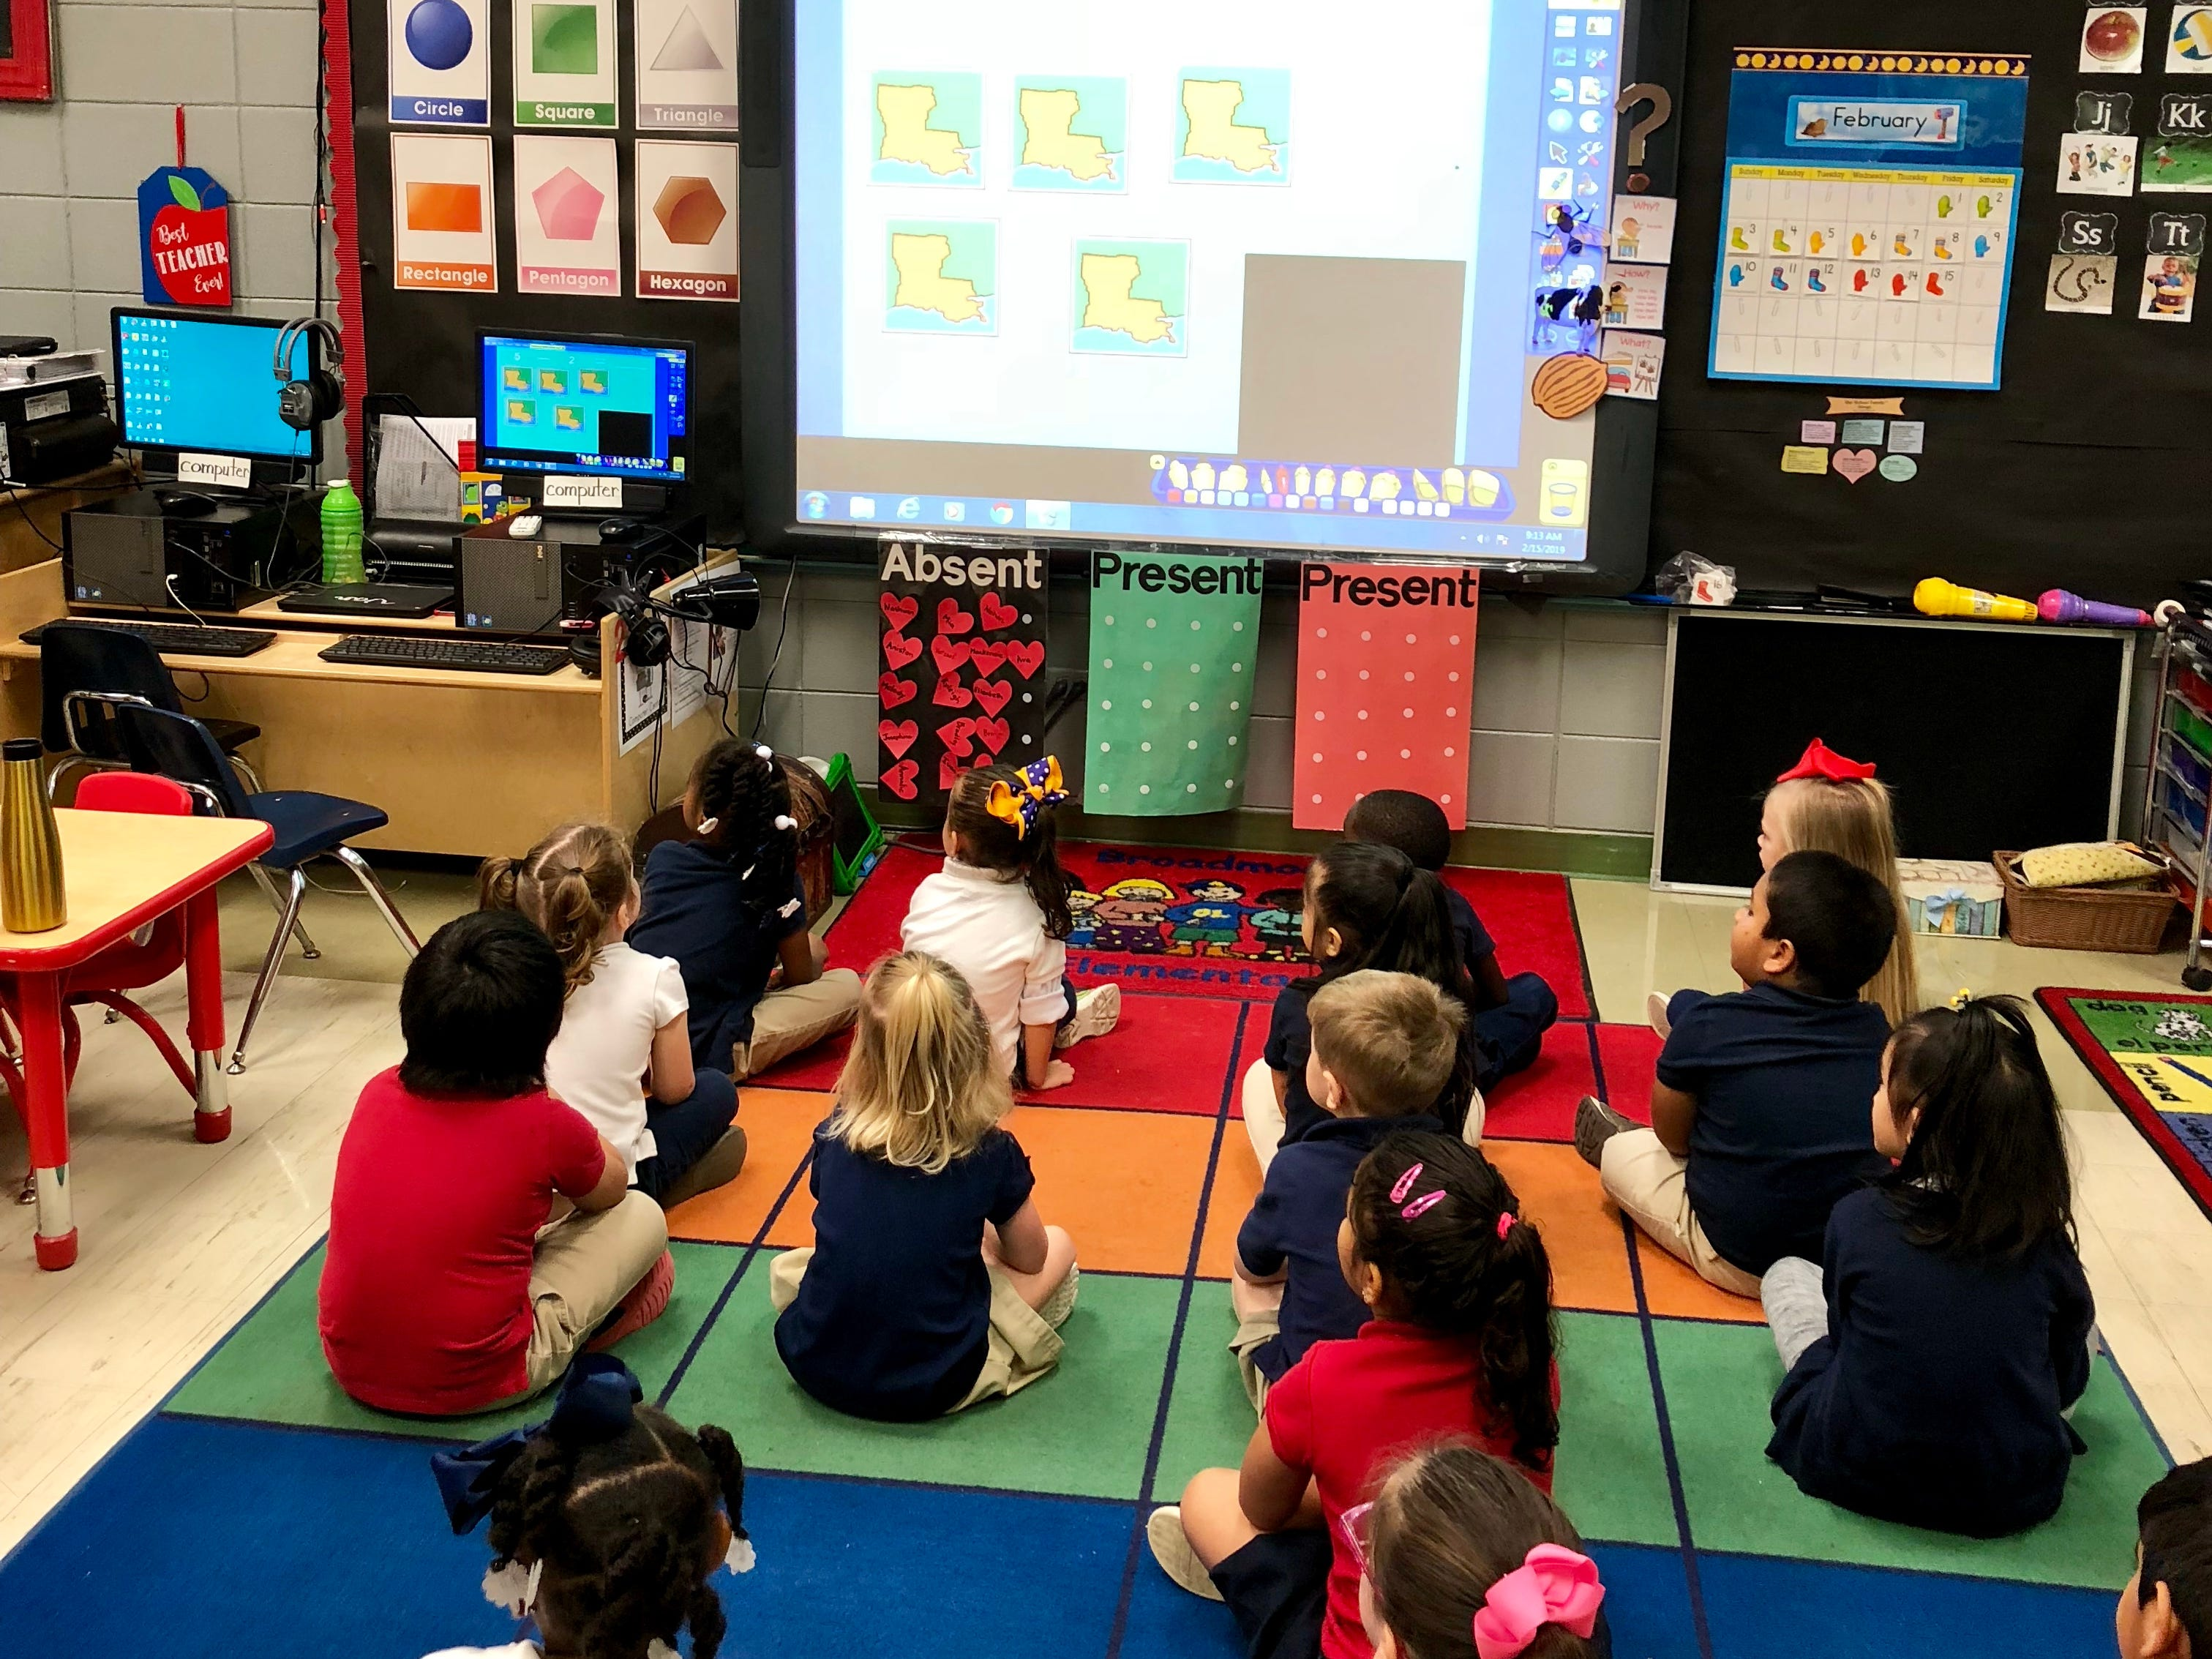 Students in Van Doole's pre-K class at Broadmoor Elementary practice adding and subtracting with Louisiana-related pictures on the smart board.